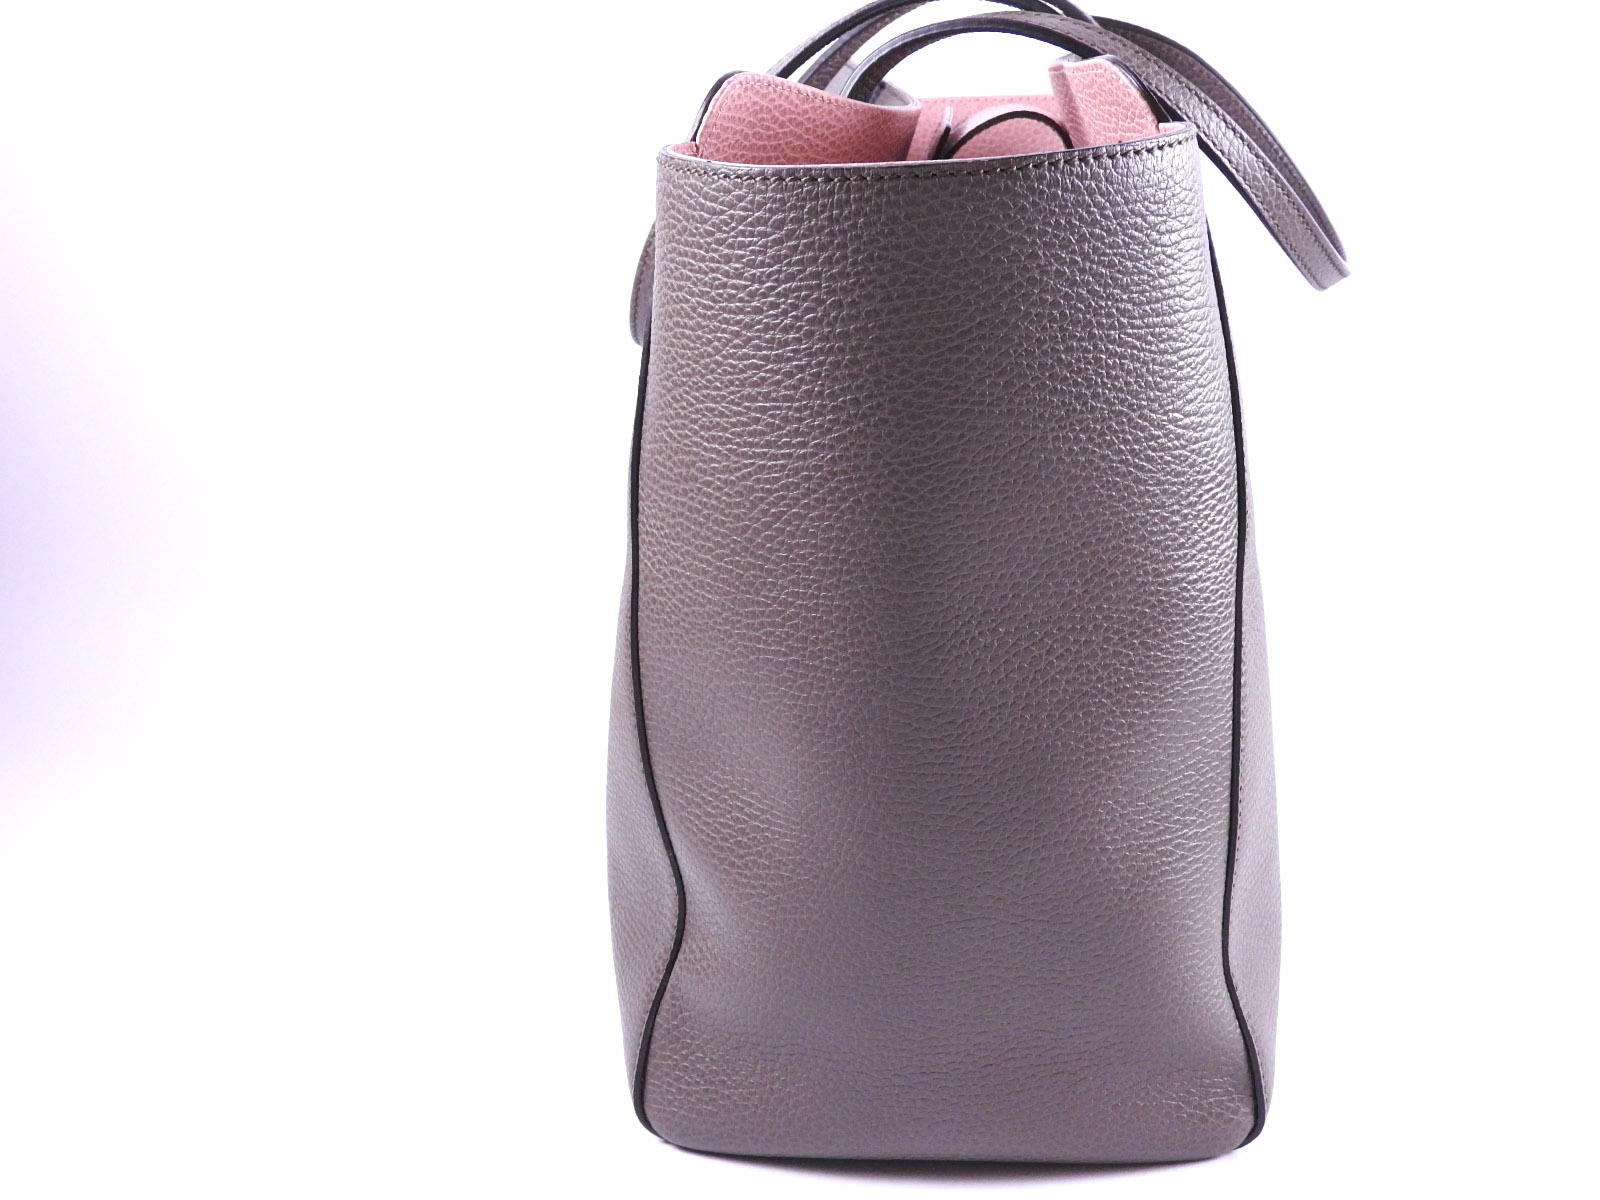 139f4bbf41ce Auth GUCCI Swing Large Tote Bag Shoulder Bag Leather Gray Pink ...